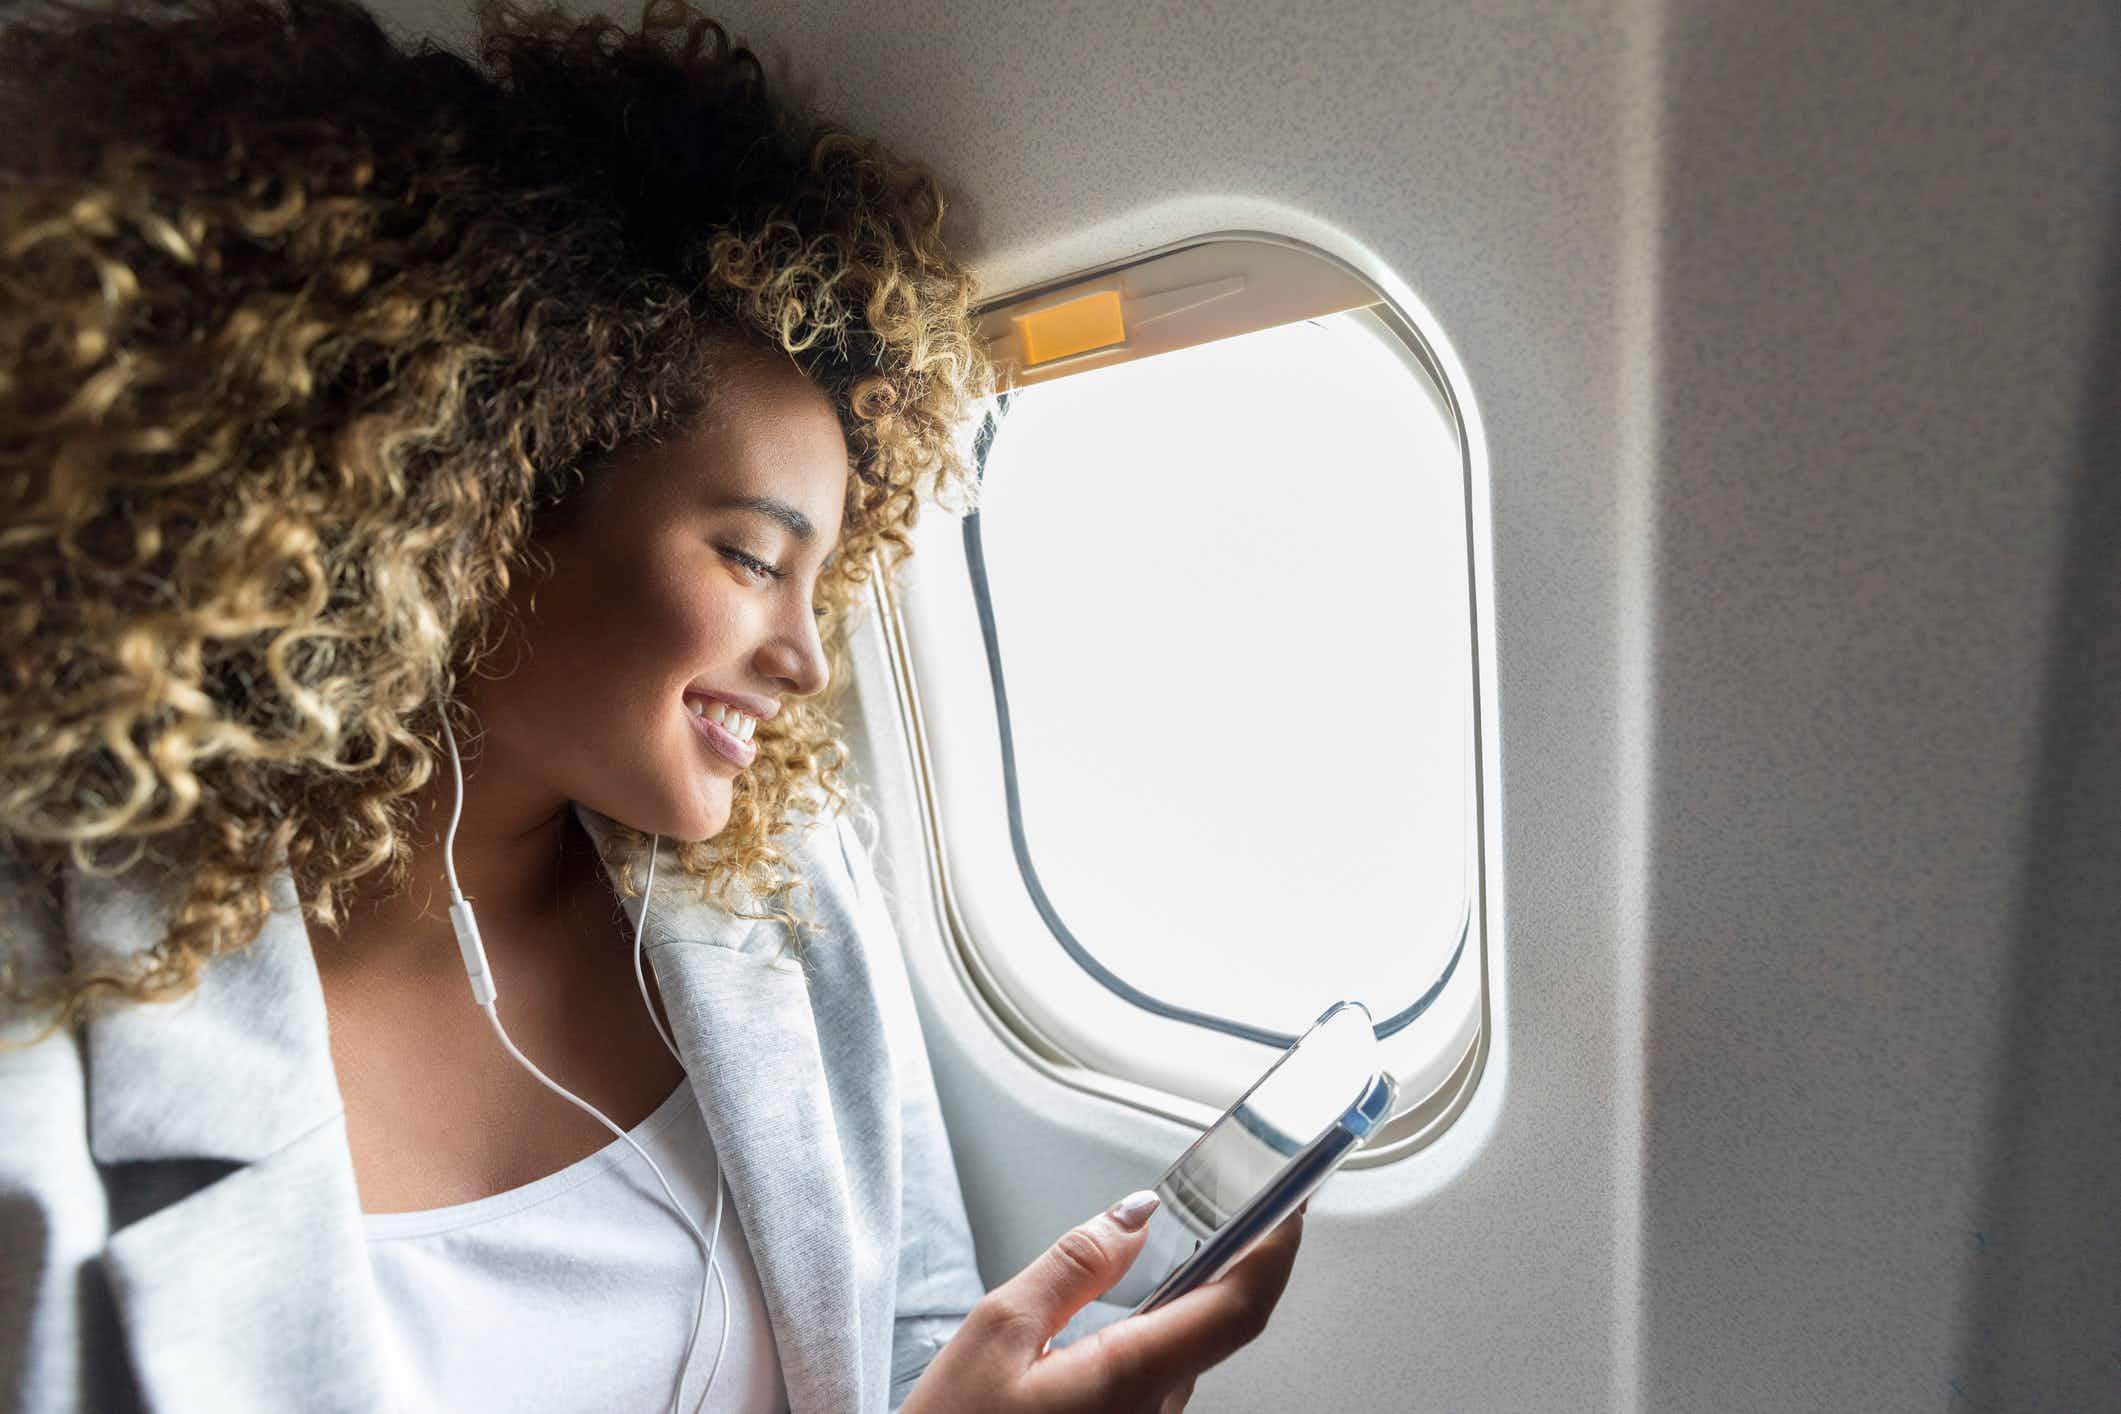 Forgetting to put your phone on airplane mode could cost you